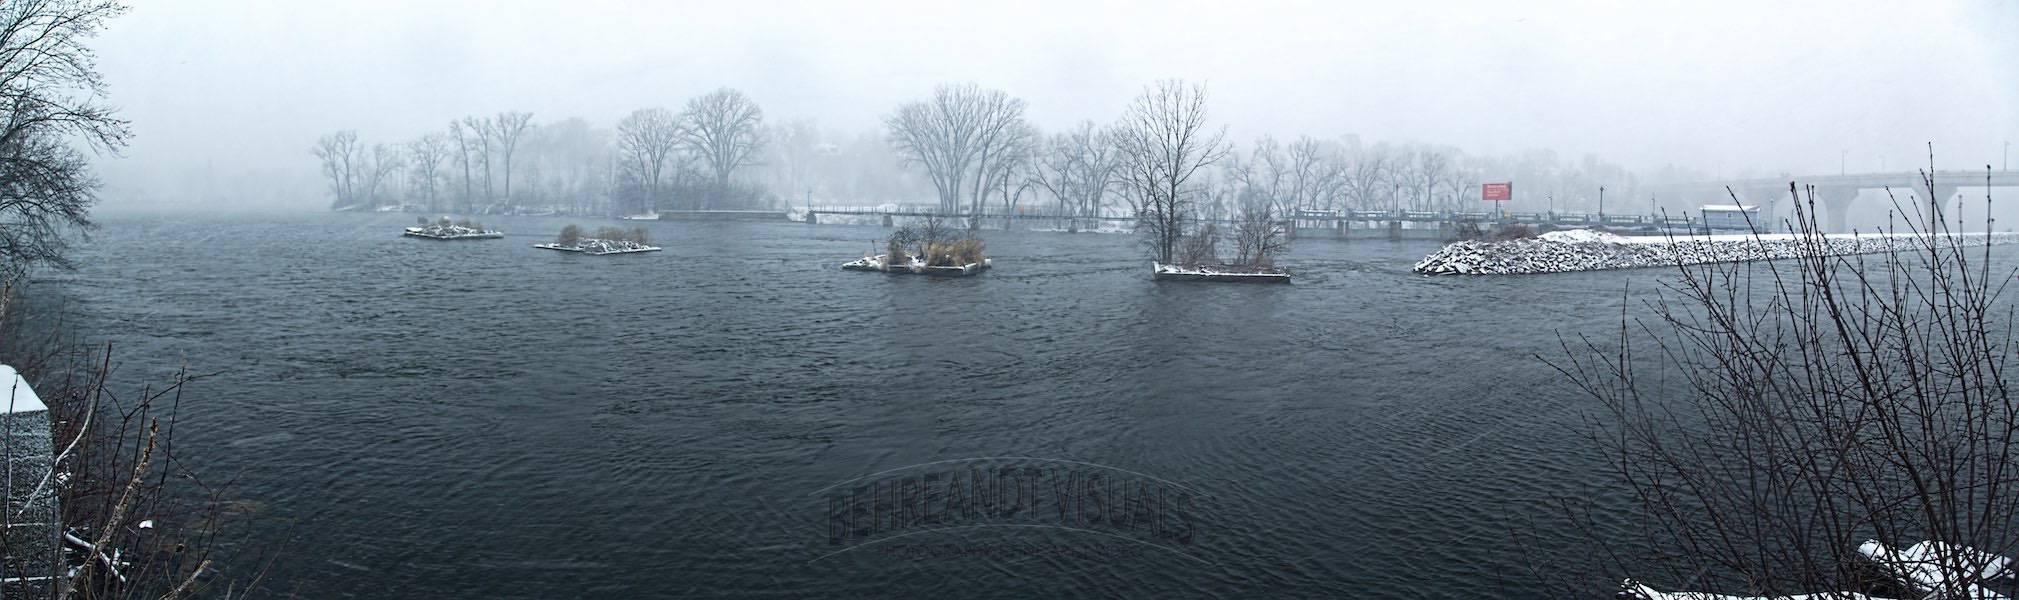 Panoramic view of the Fox River in Appleton, Wisconsin during a snow storm.